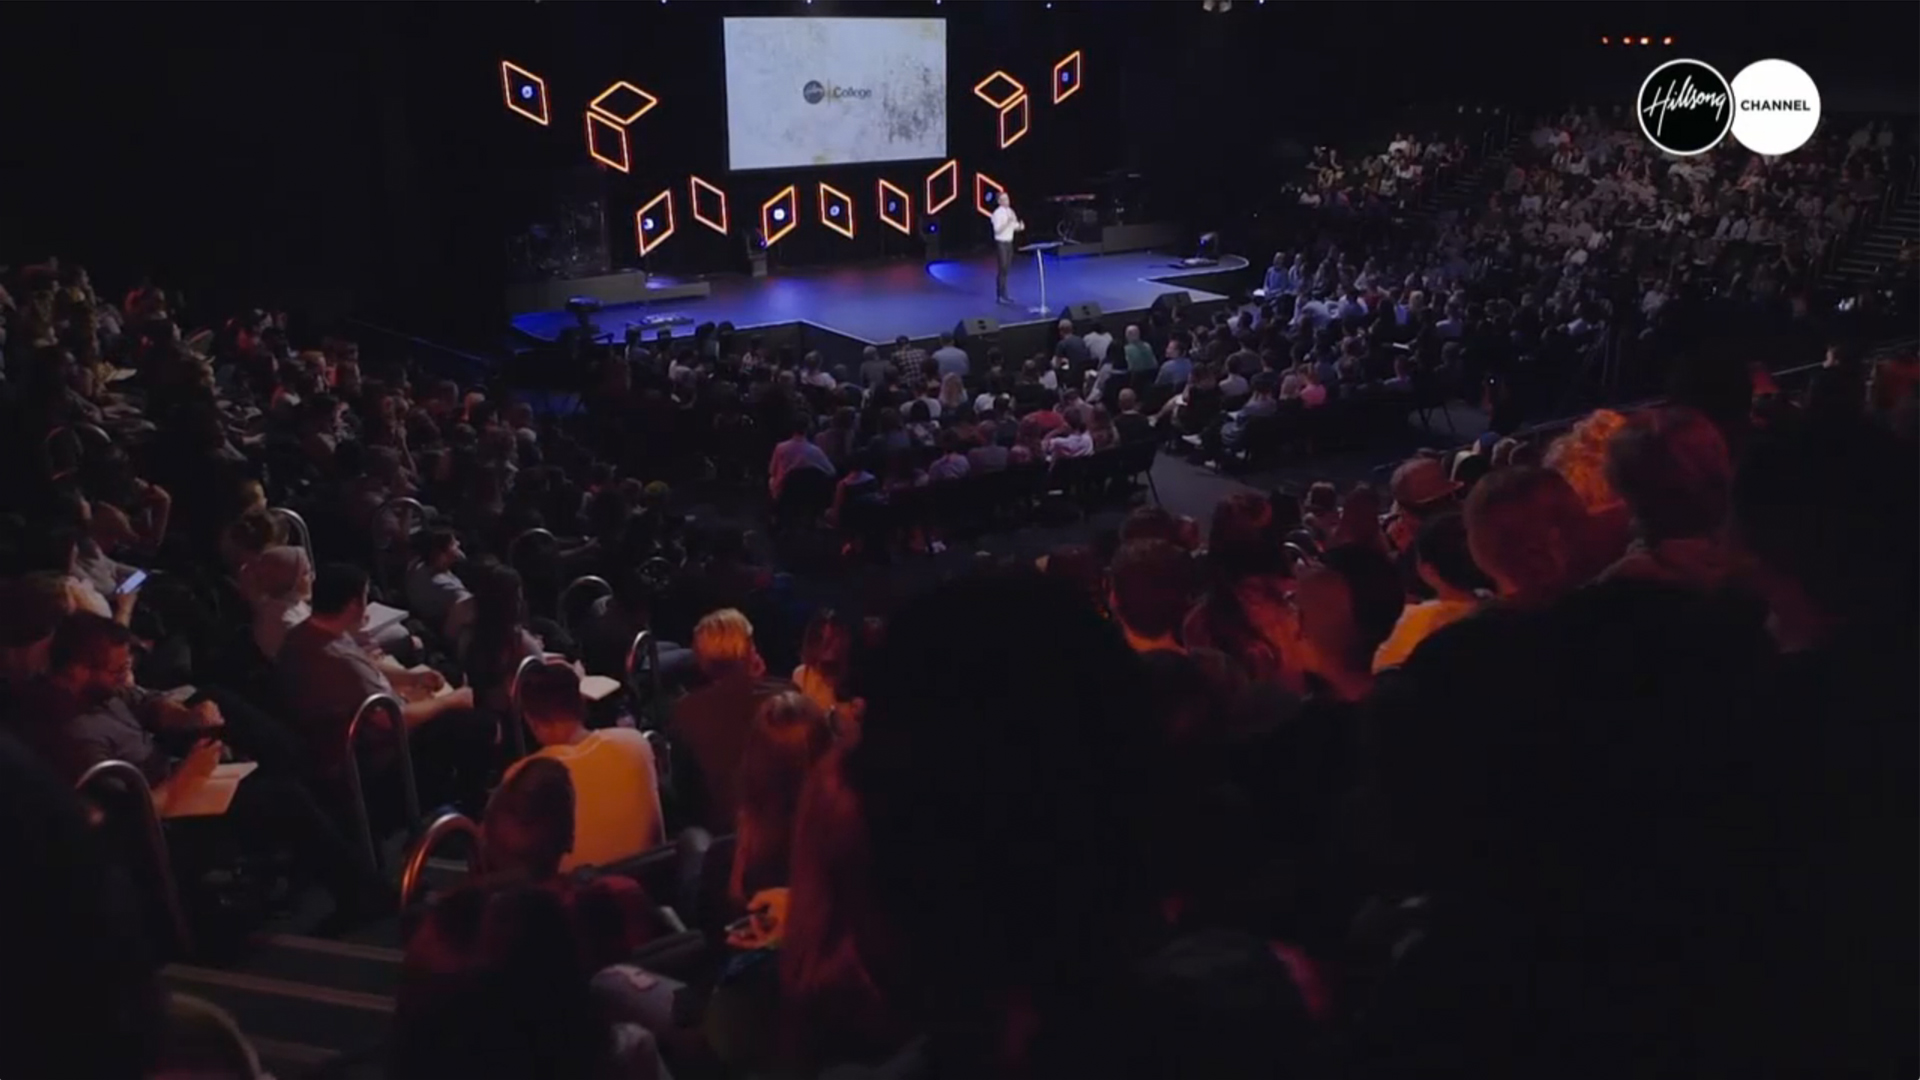 Hillsong Channel – Watch Live! App Ranking and Store Data